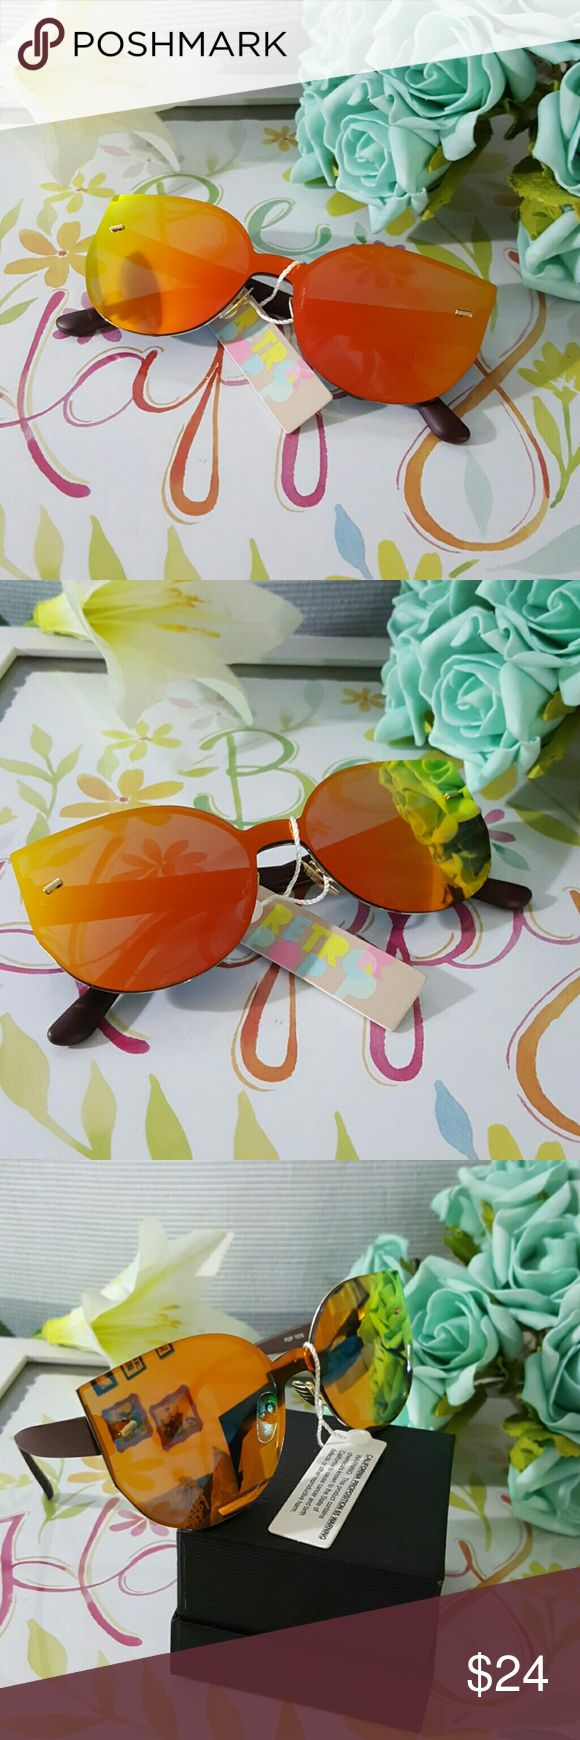 HIGH QUALITY CAT EYE MIRROR VINTAGE  SUNGLASSES Orange HIGH QUALITY CAT EYE MIRROR VINTAGE  SUNGLASSES Cat eye Women Sunglasses 2017 New Brand Design Mirror Flat  Vintage Cateye Fashion sun glasses lady Eyewear  58mm   ALSO AVAILABLE IN MY CLOSET. LATEX WAIST TRAINER NEOPRENE CONTROL CINCHER VEST CORSET BUTT LIFTER PADDED PANTY SWIMSUIT WOMAN MEN SUNGLASSES SILICONE BRA ADHESIVE NIPPLE COVERS PHONE Accessories Sunglasses